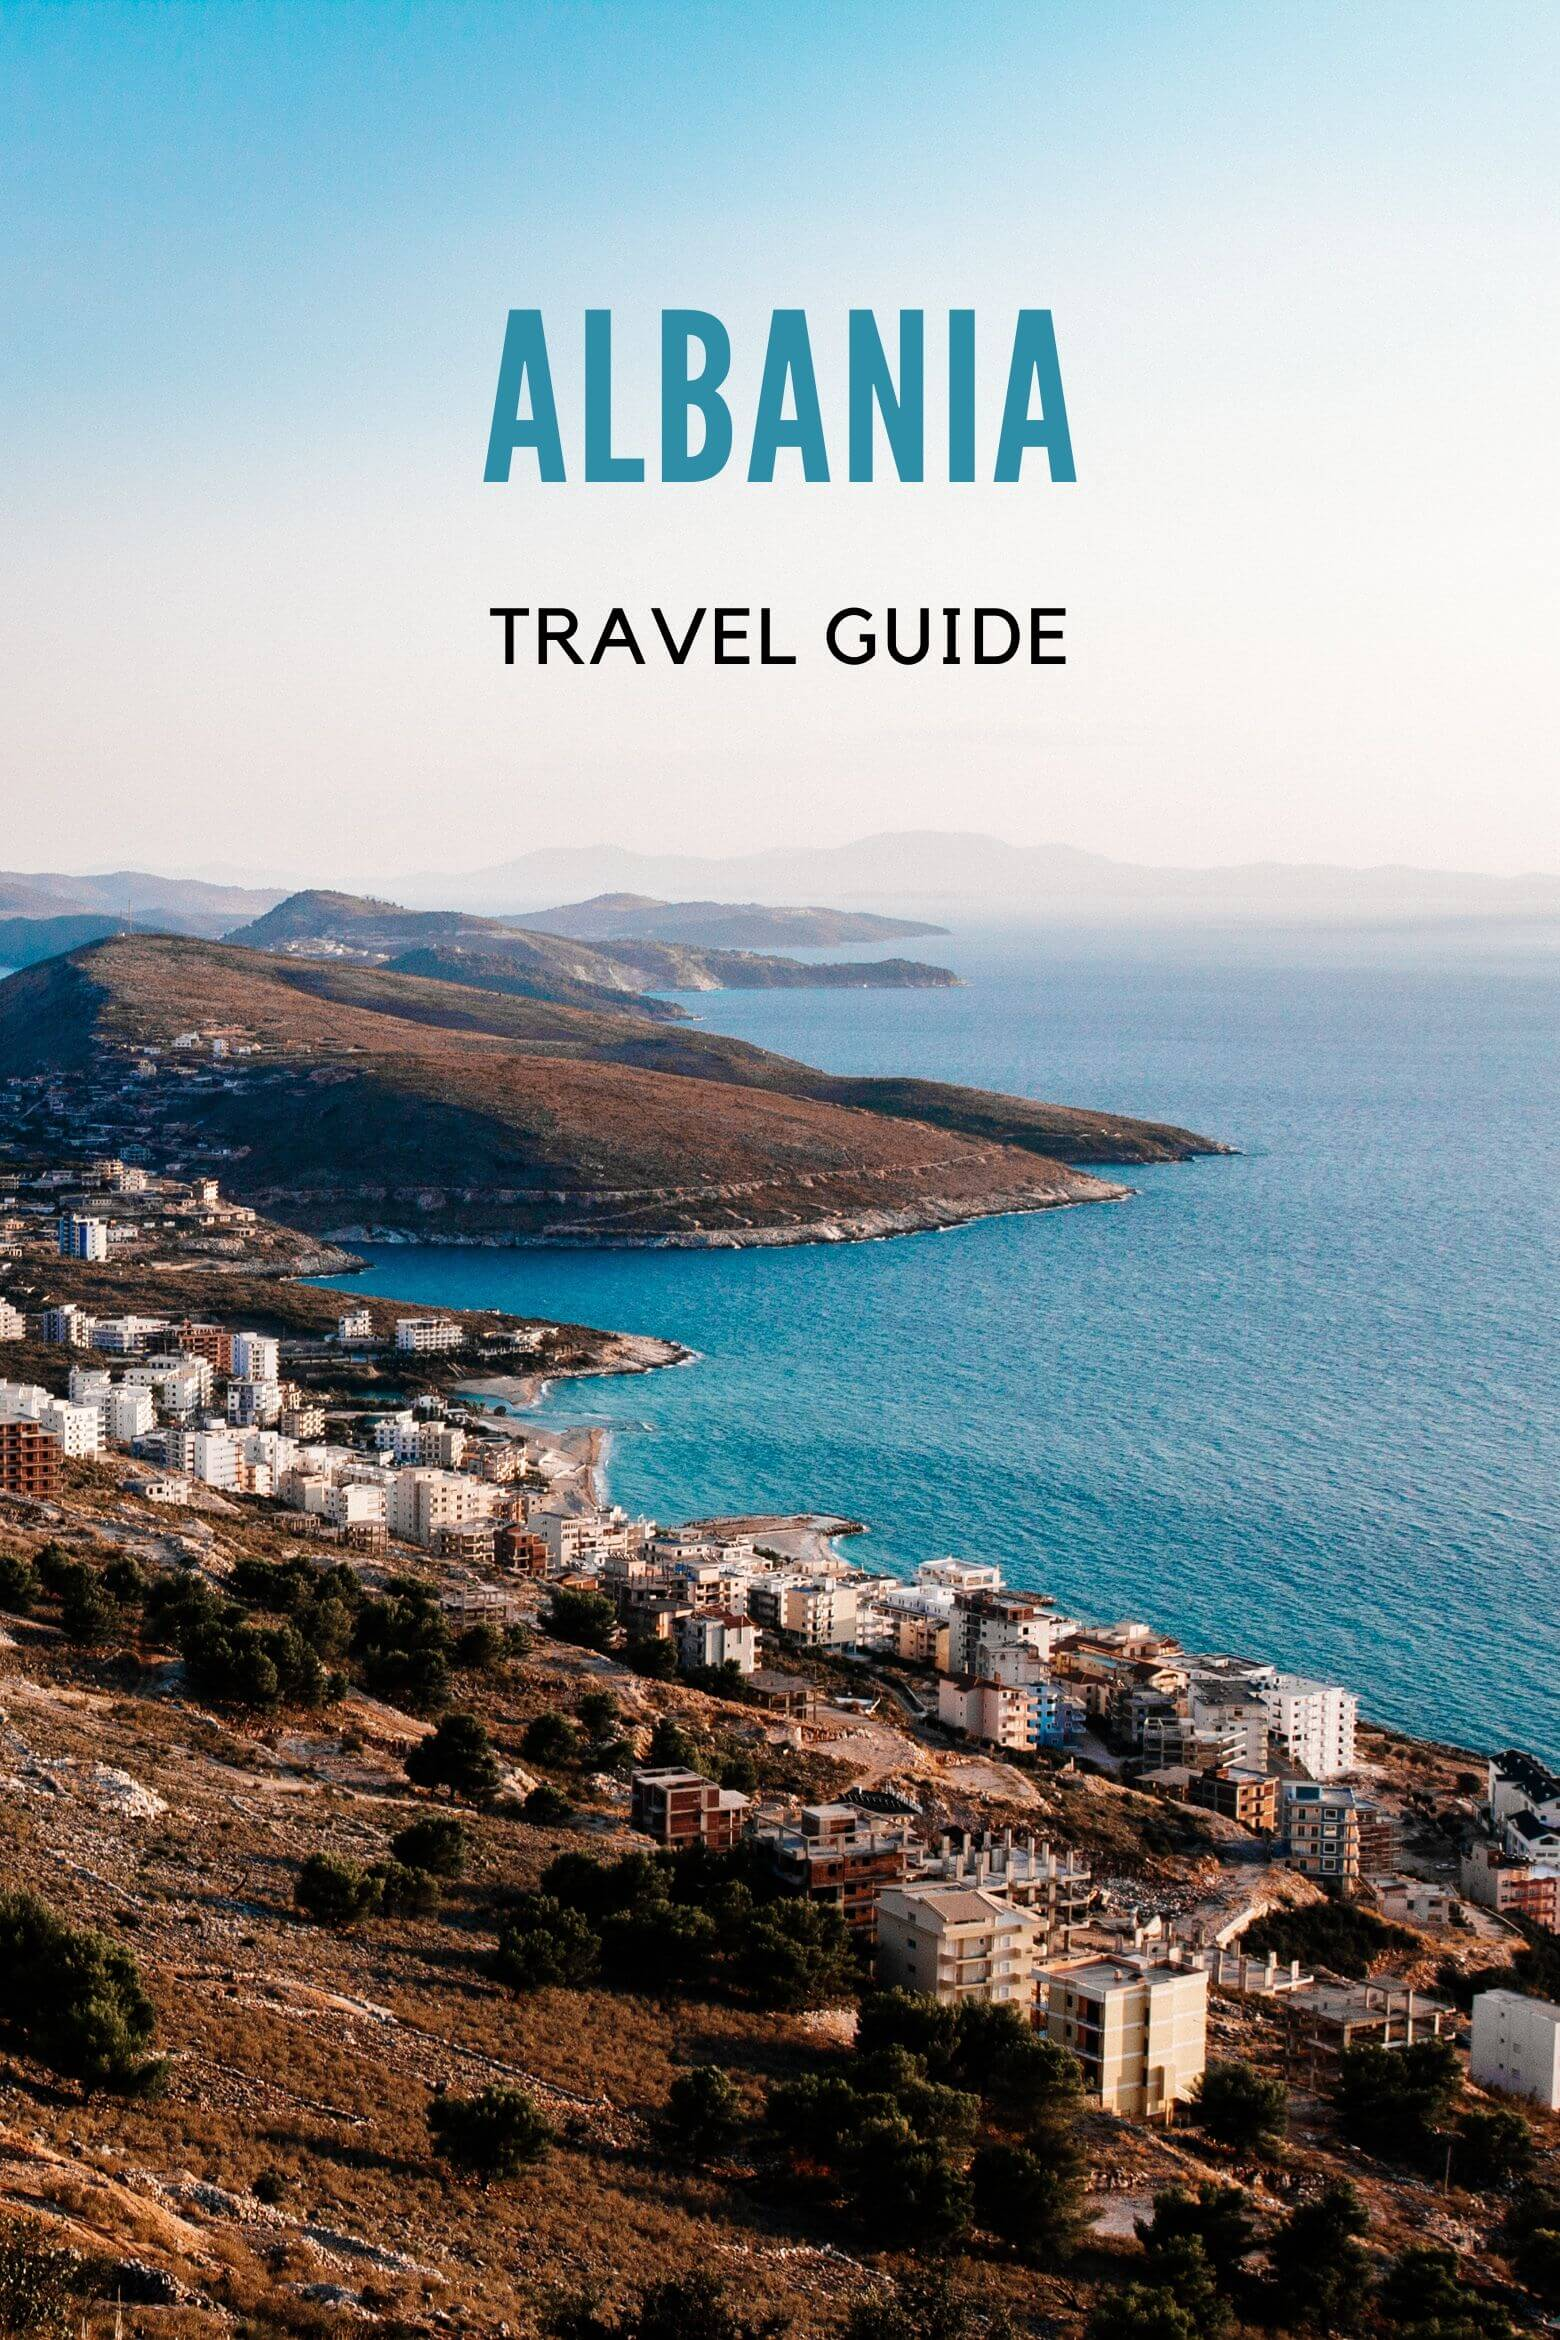 Albania Travel Guide and Itinerary